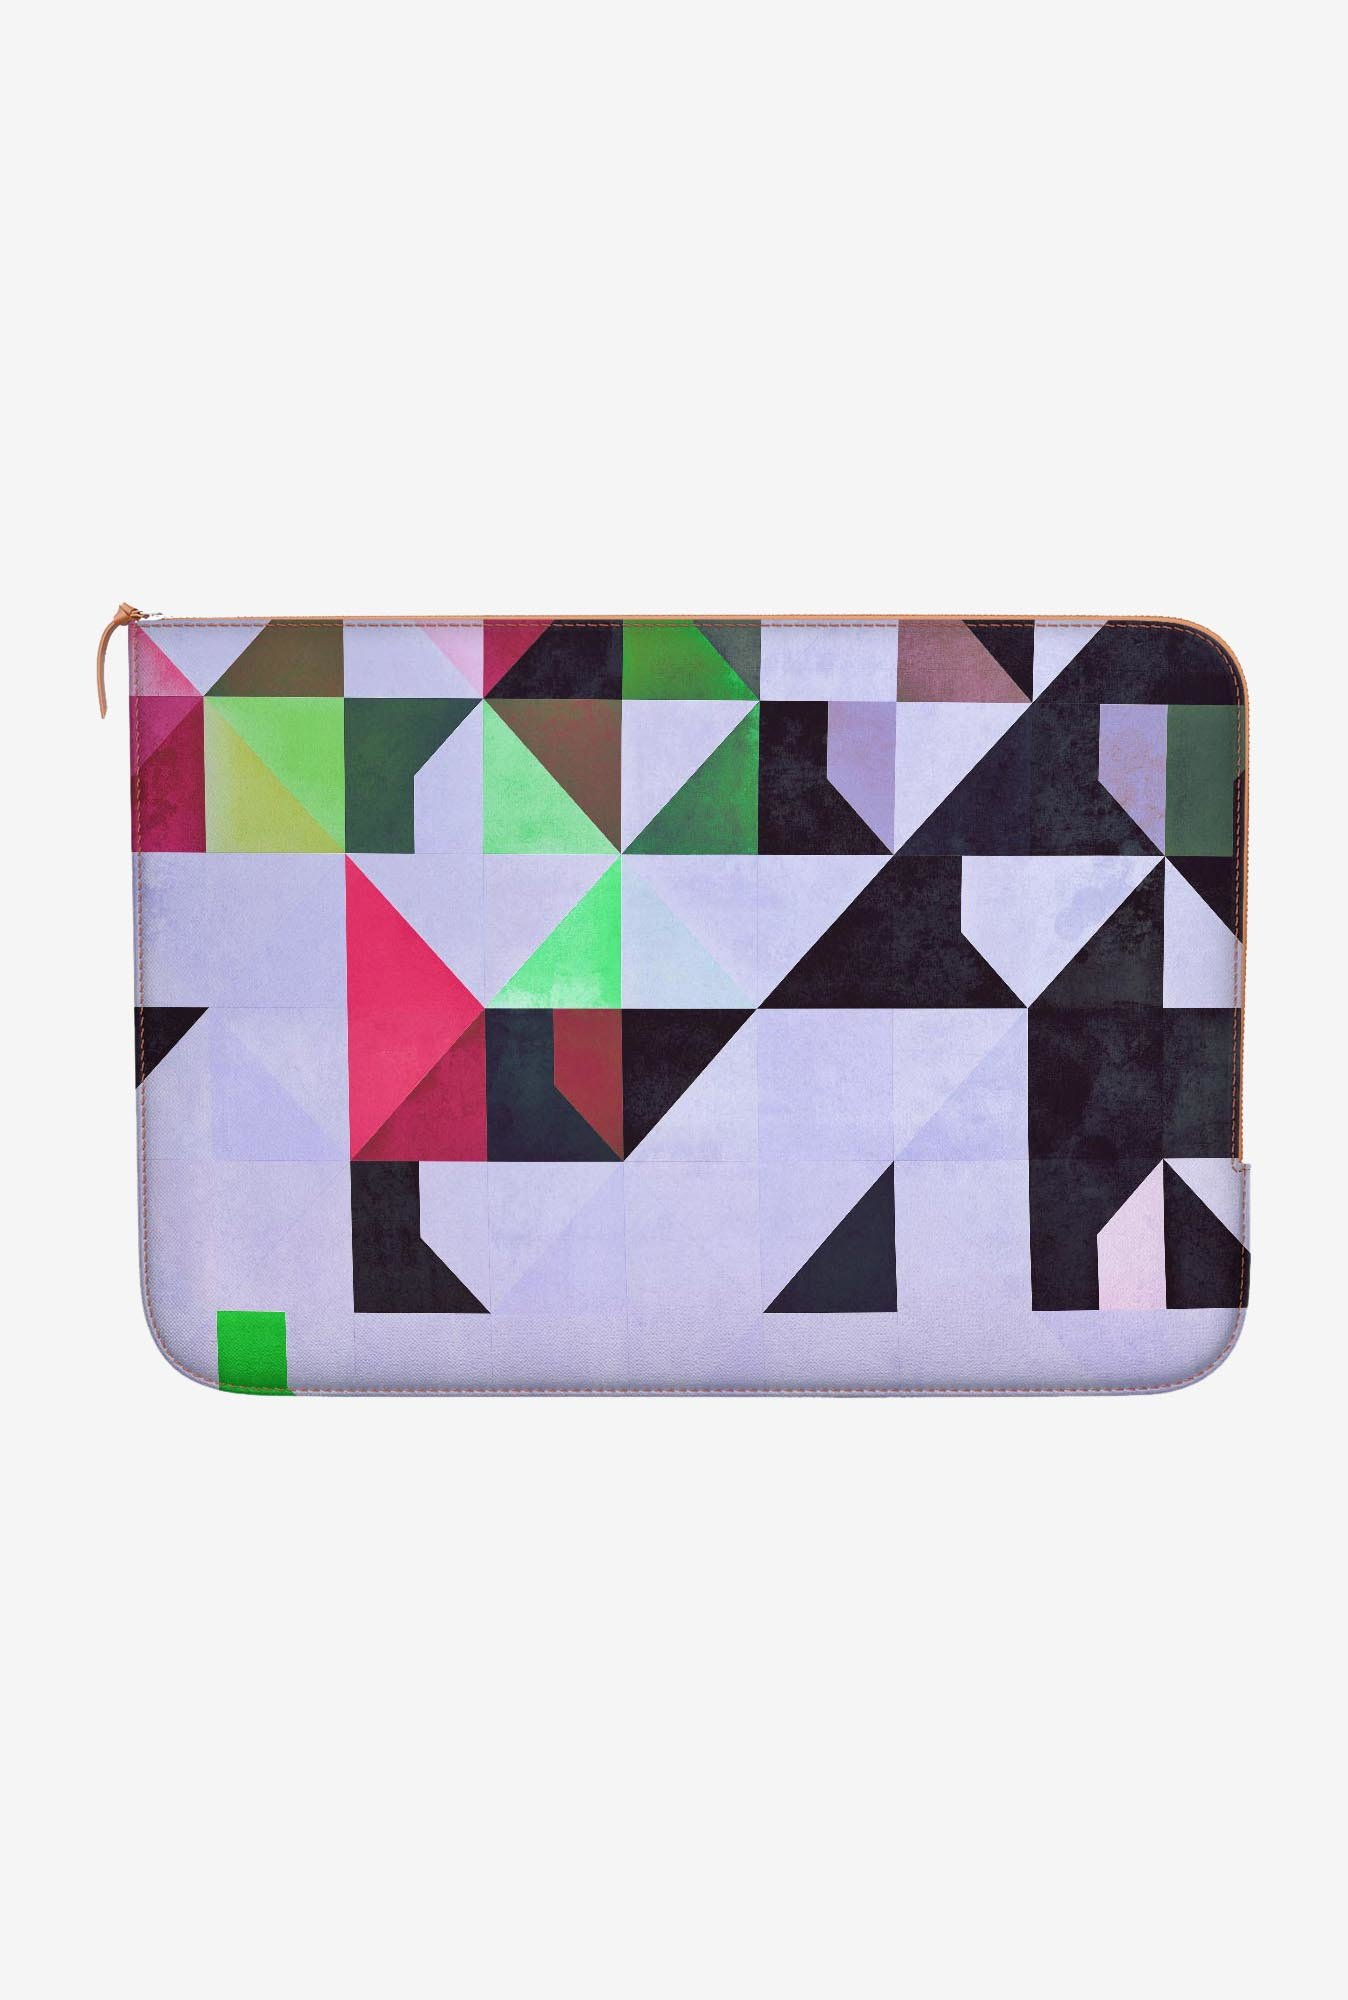 DailyObjects Ybsyssx MacBook Air 11 Zippered Sleeve